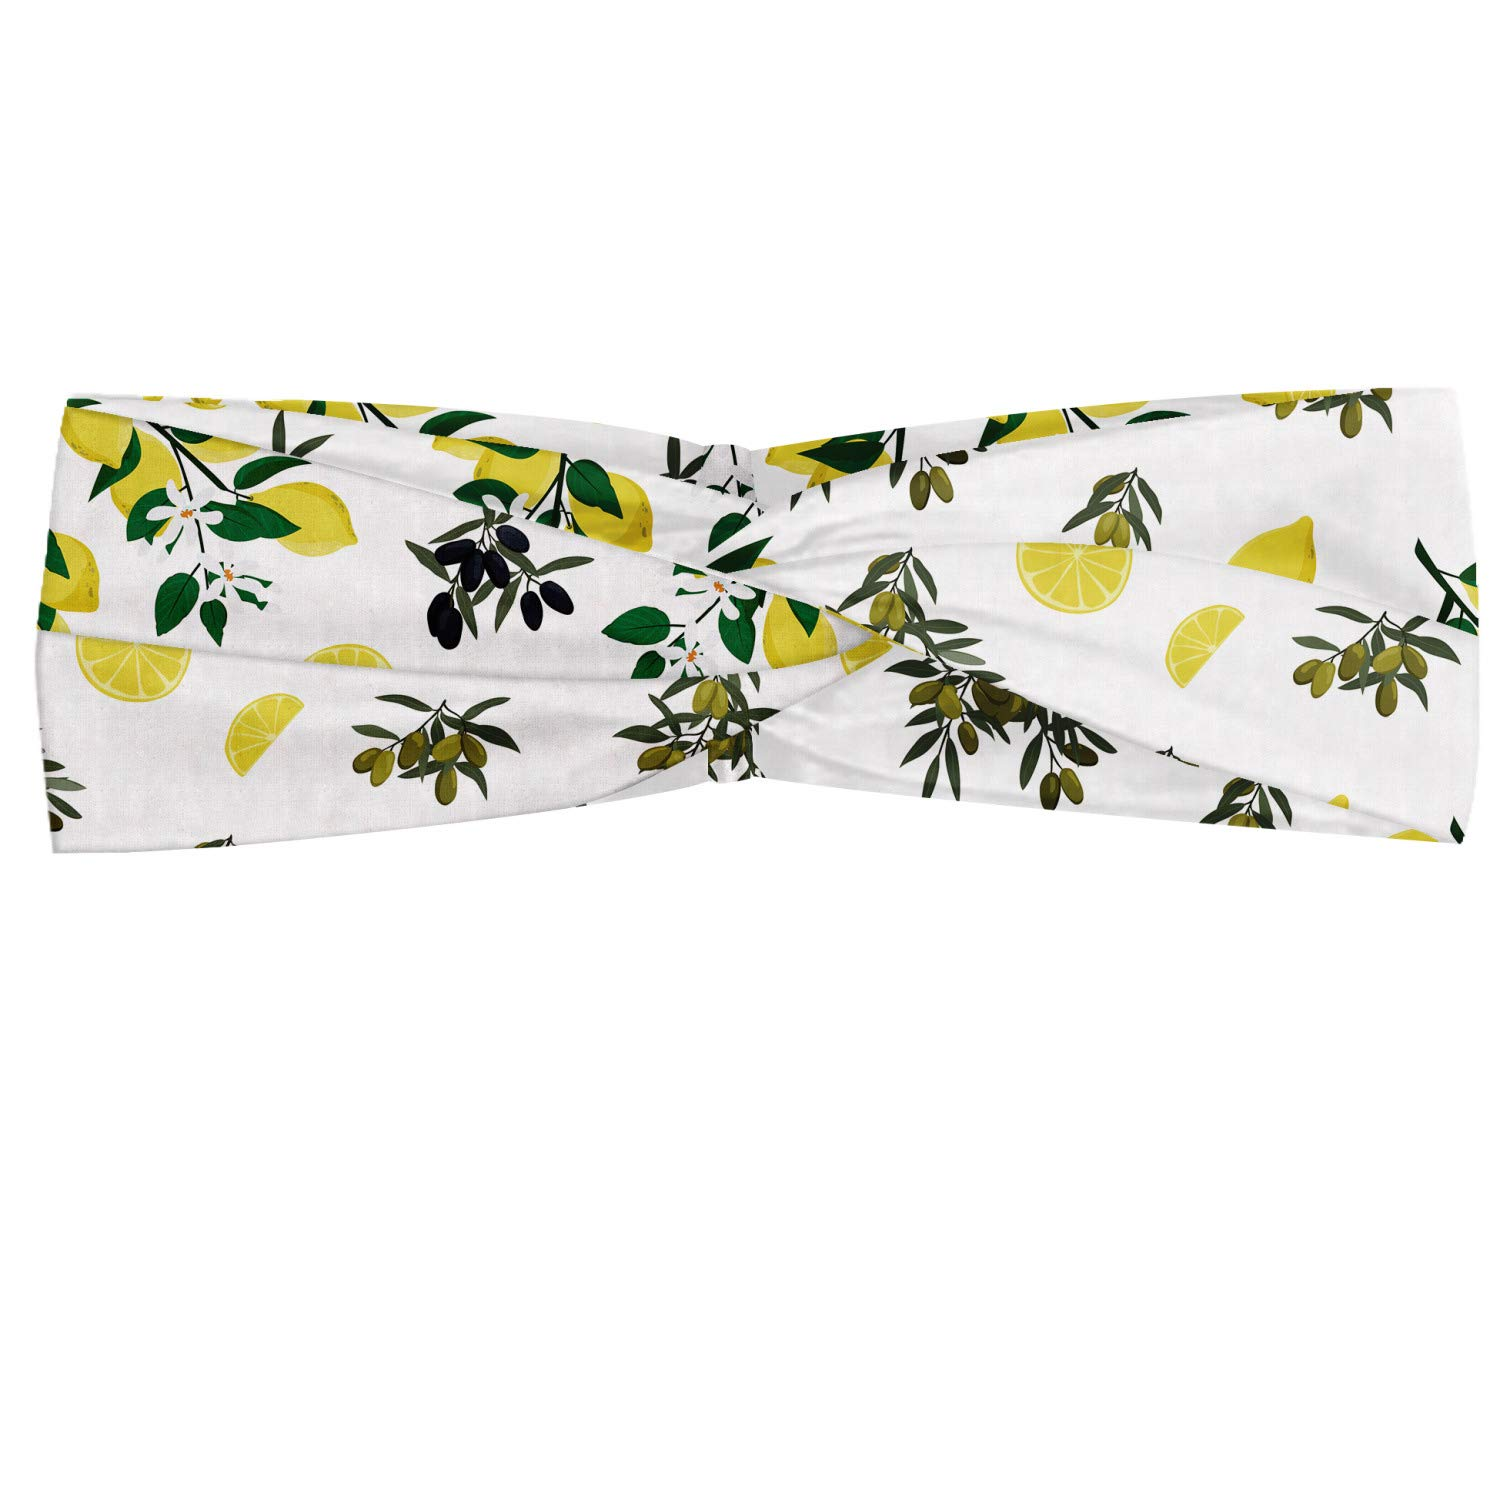 Ambesonne Botanical Headband, Composition of Olives and Lemons on Trees Organic Life, Elastic and Soft Women's Bandana for Sports and Everyday Use, Pastel Yellow Green